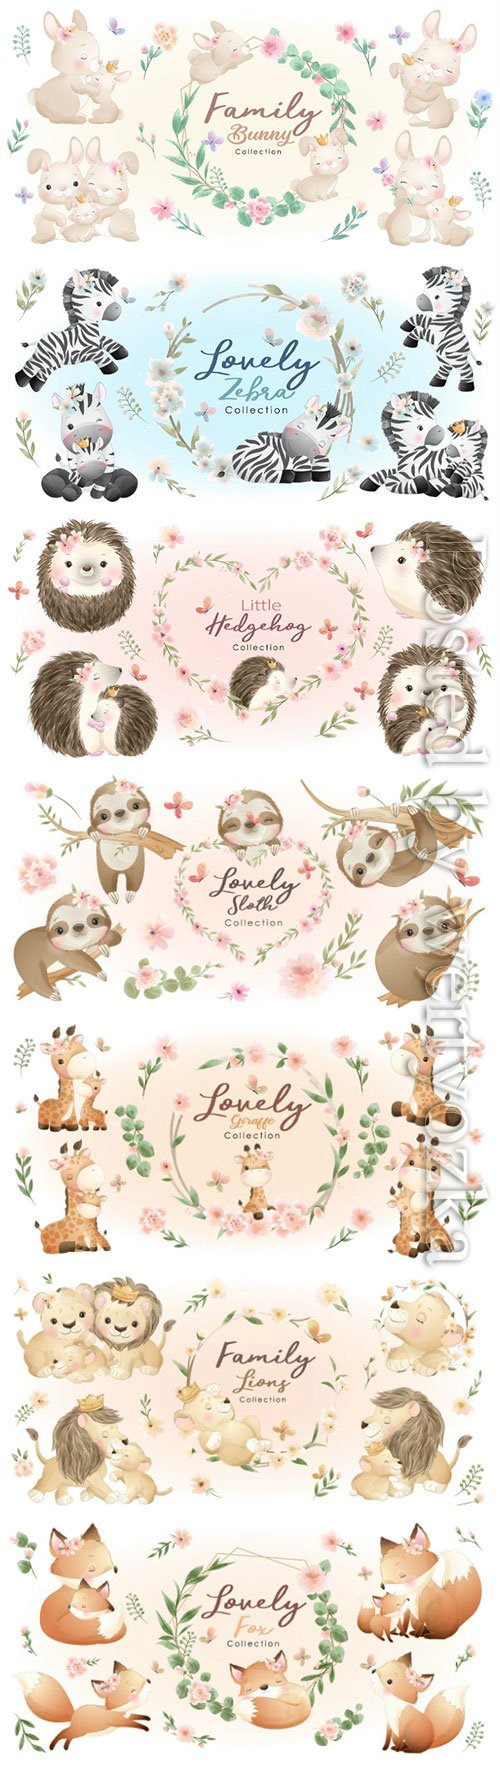 Cute animals collection of vector illustrations